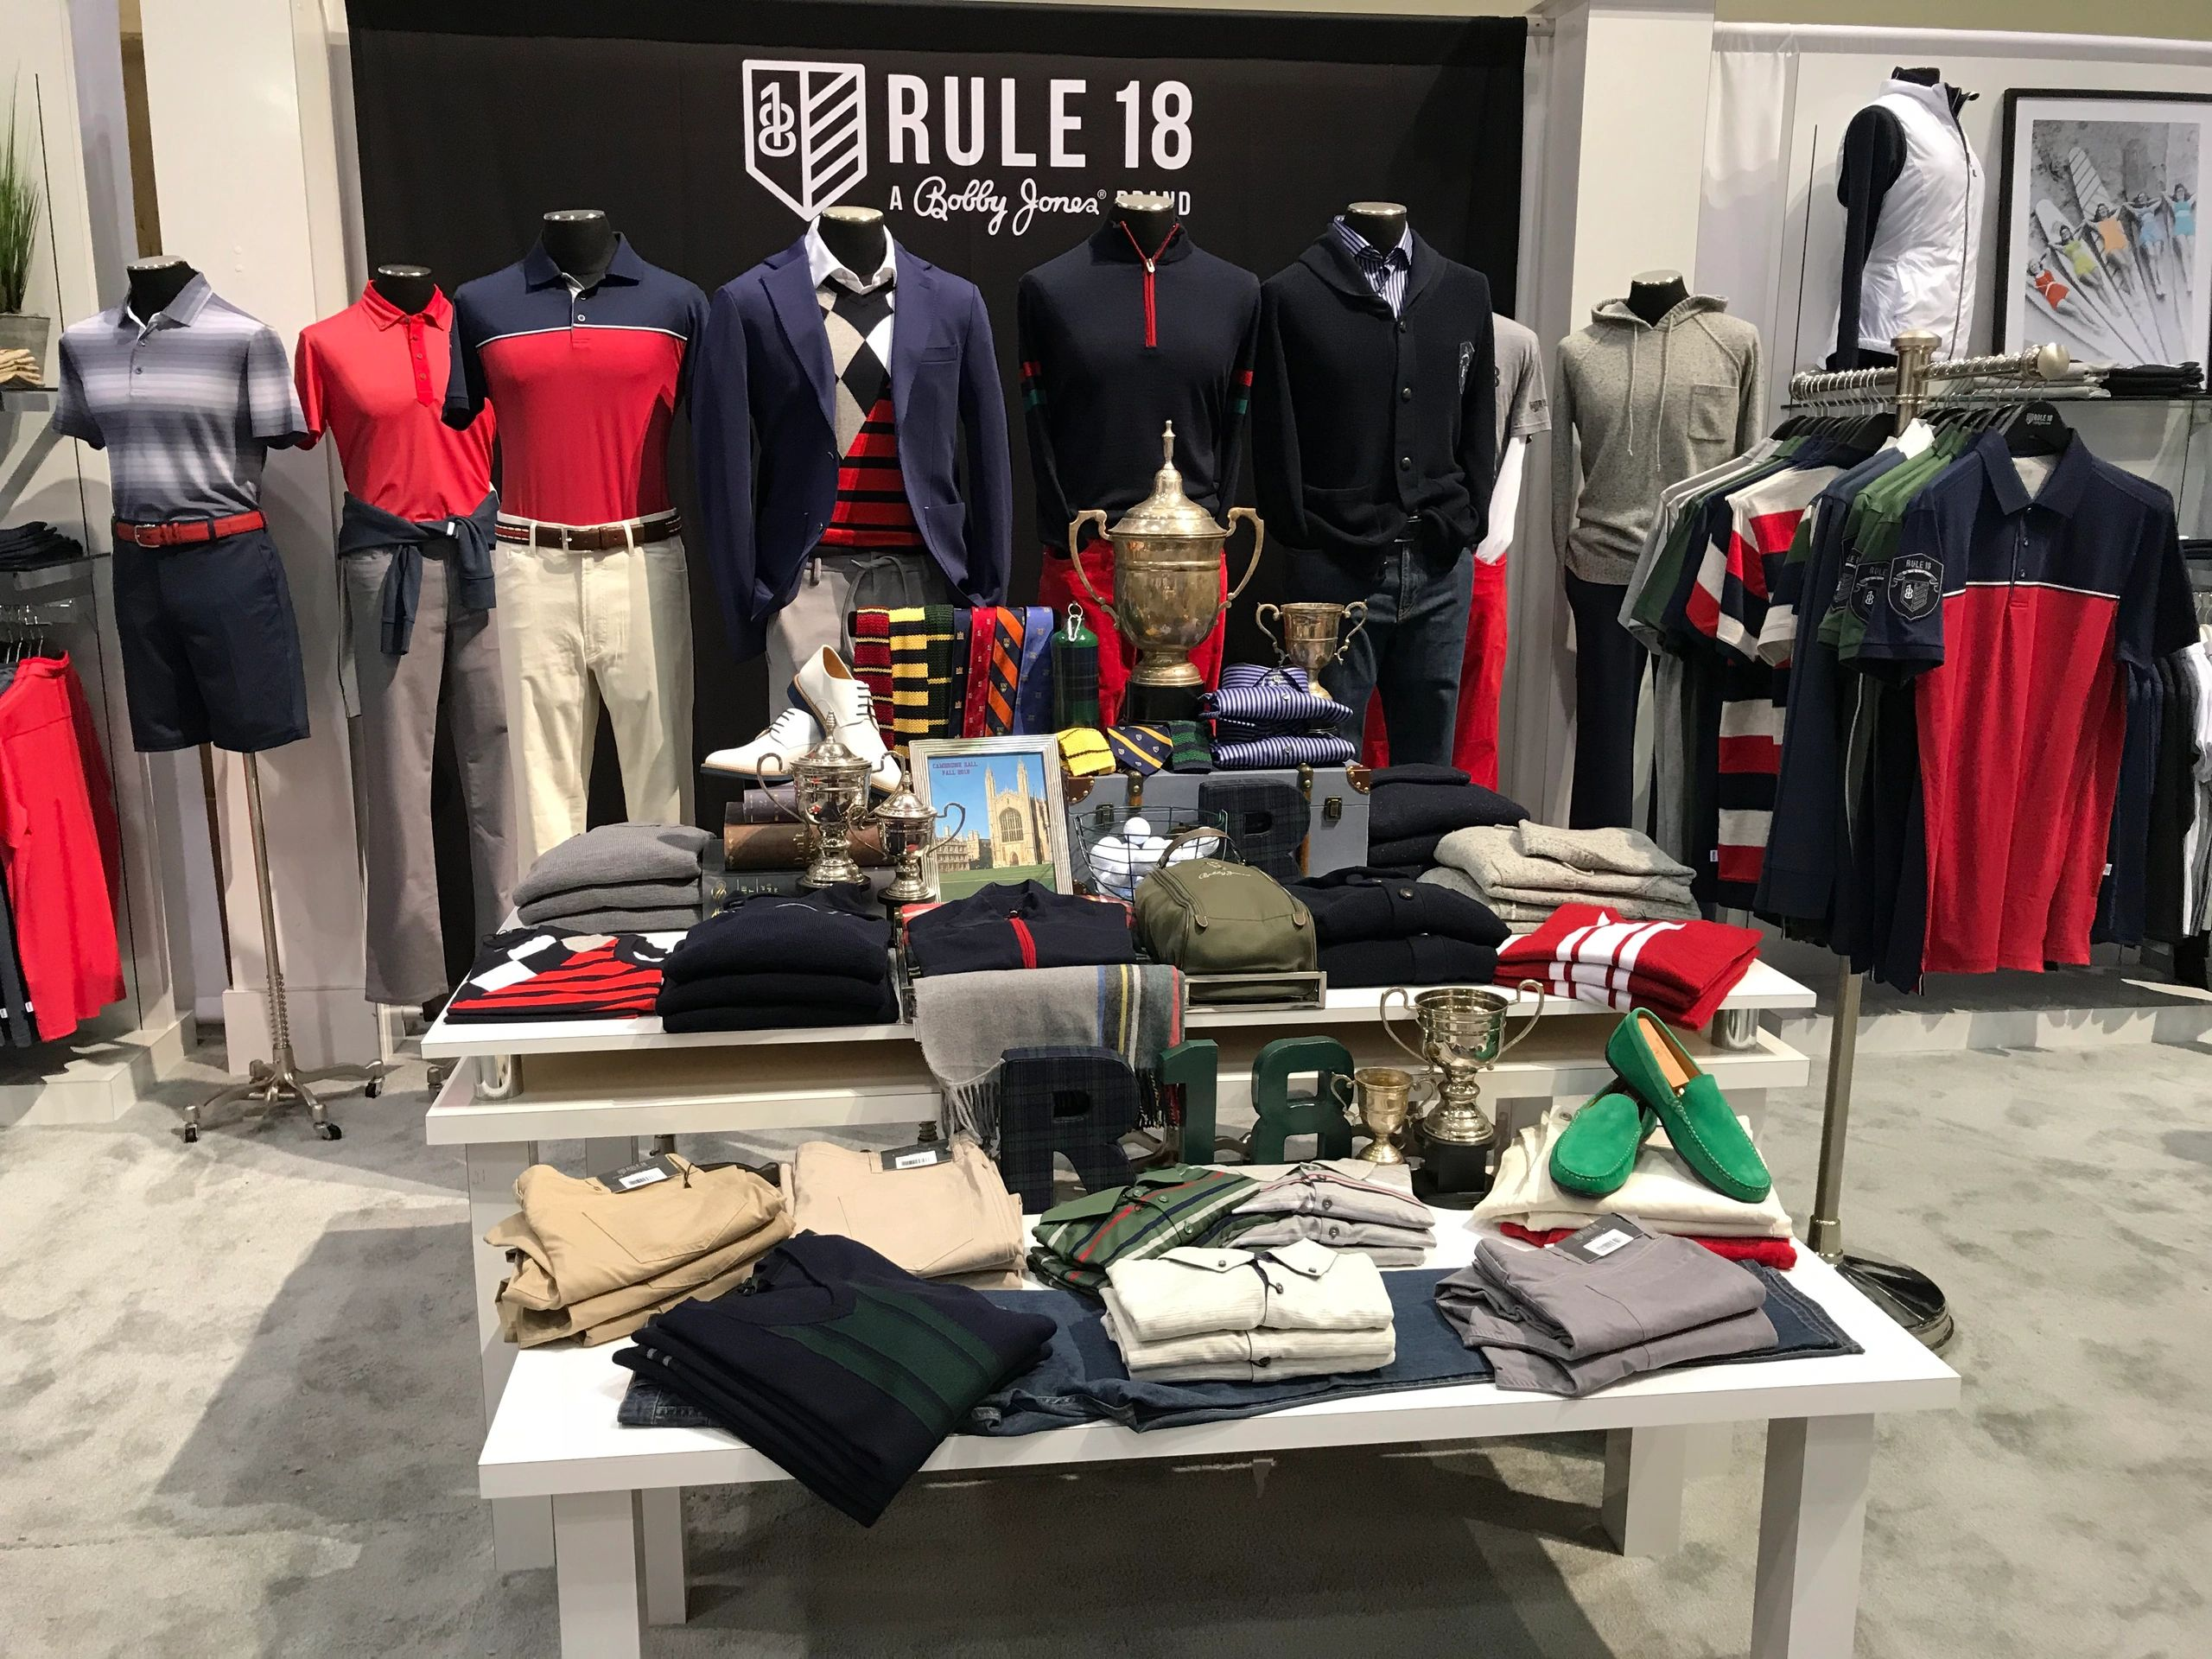 "{""blocks"":[{""key"":""9klcq"",""text"":""Visual Merchandising for a men's golf apparel company's trade show booth styled as a retail pro shop."",""type"":""unstyled"",""depth"":0,""inlineStyleRanges"":[],""entityRanges"":[],""data"":{}}],""entityMap"":{}}"